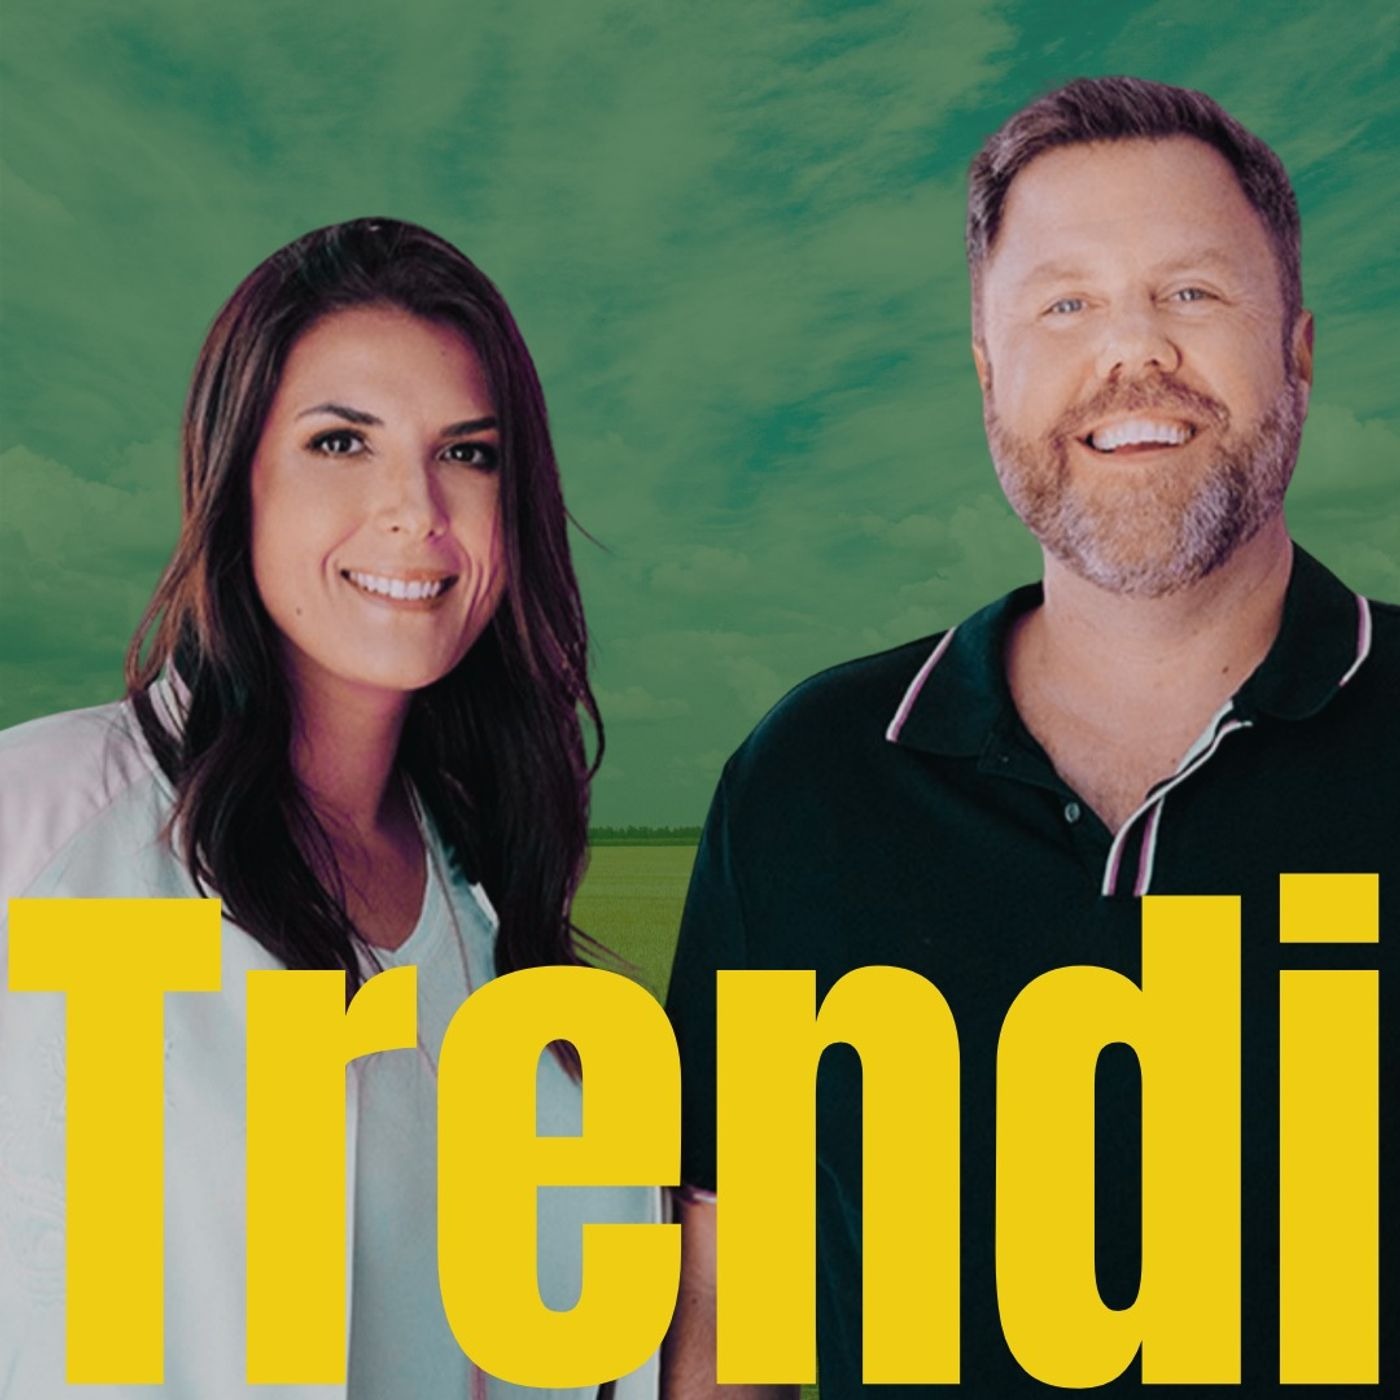 Reducing Food Waste is Trendi with Carissa Campeo and Craig McIntosh